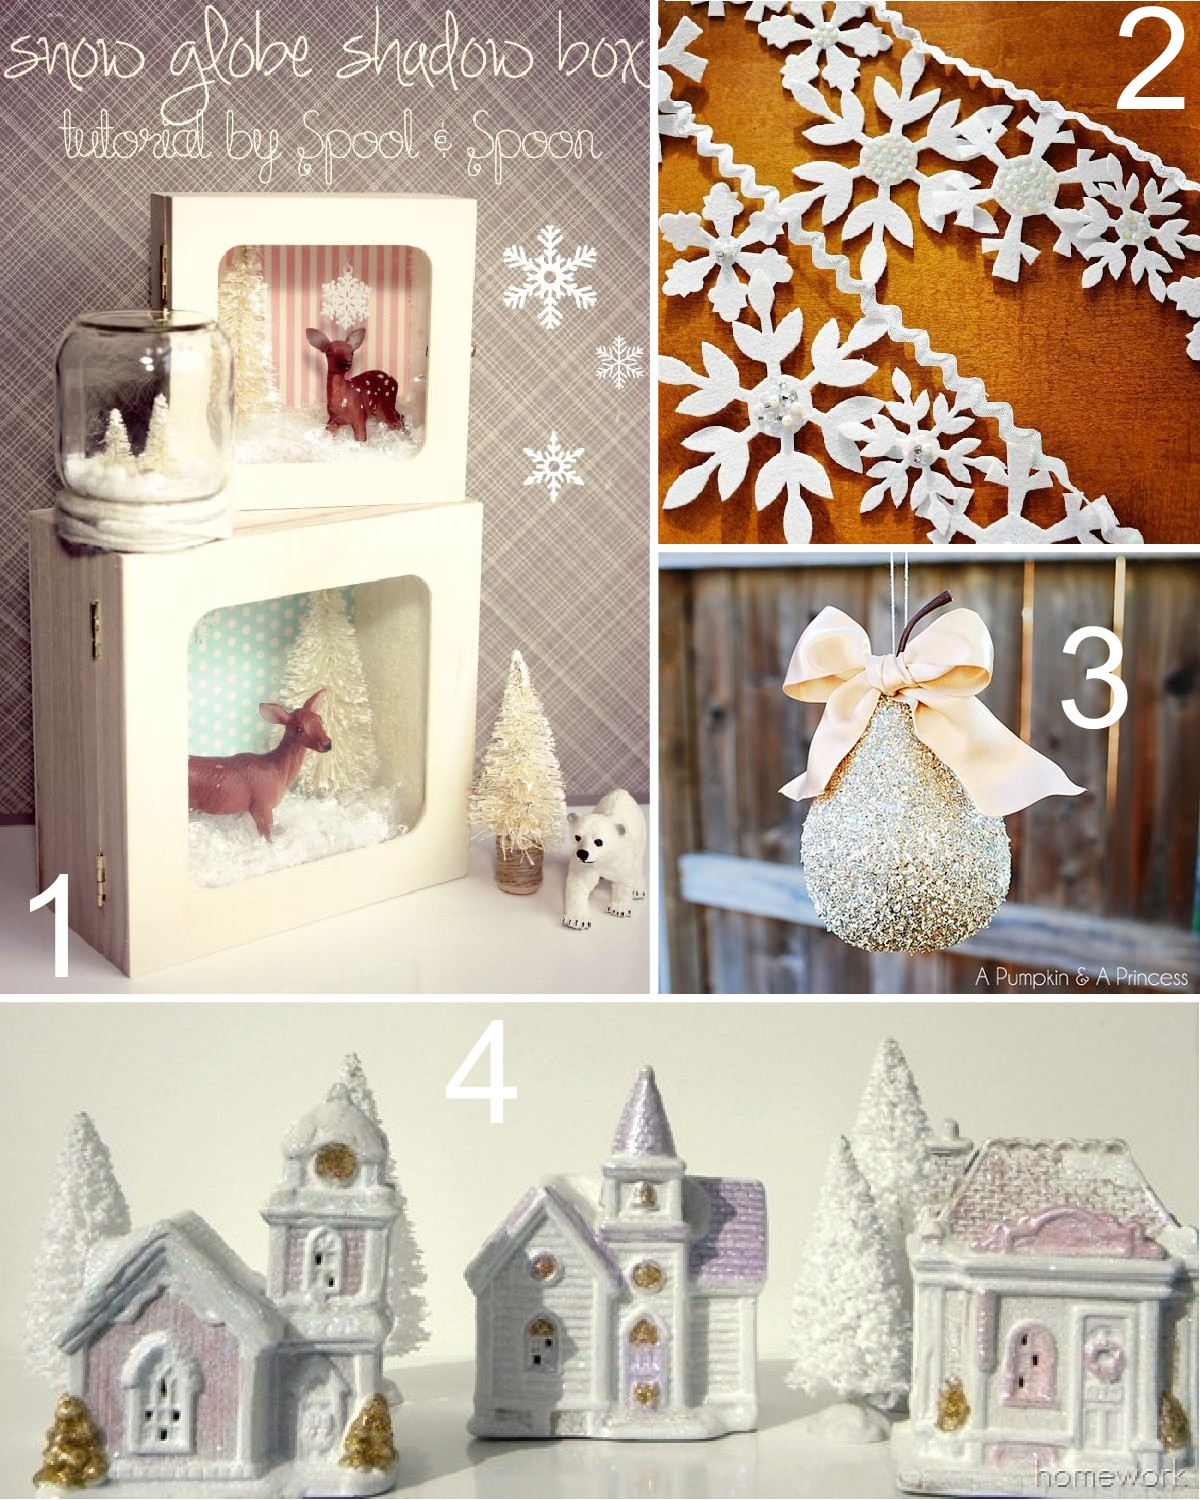 25 Winter Wonderland Craft Projects - The Scrap Shoppe